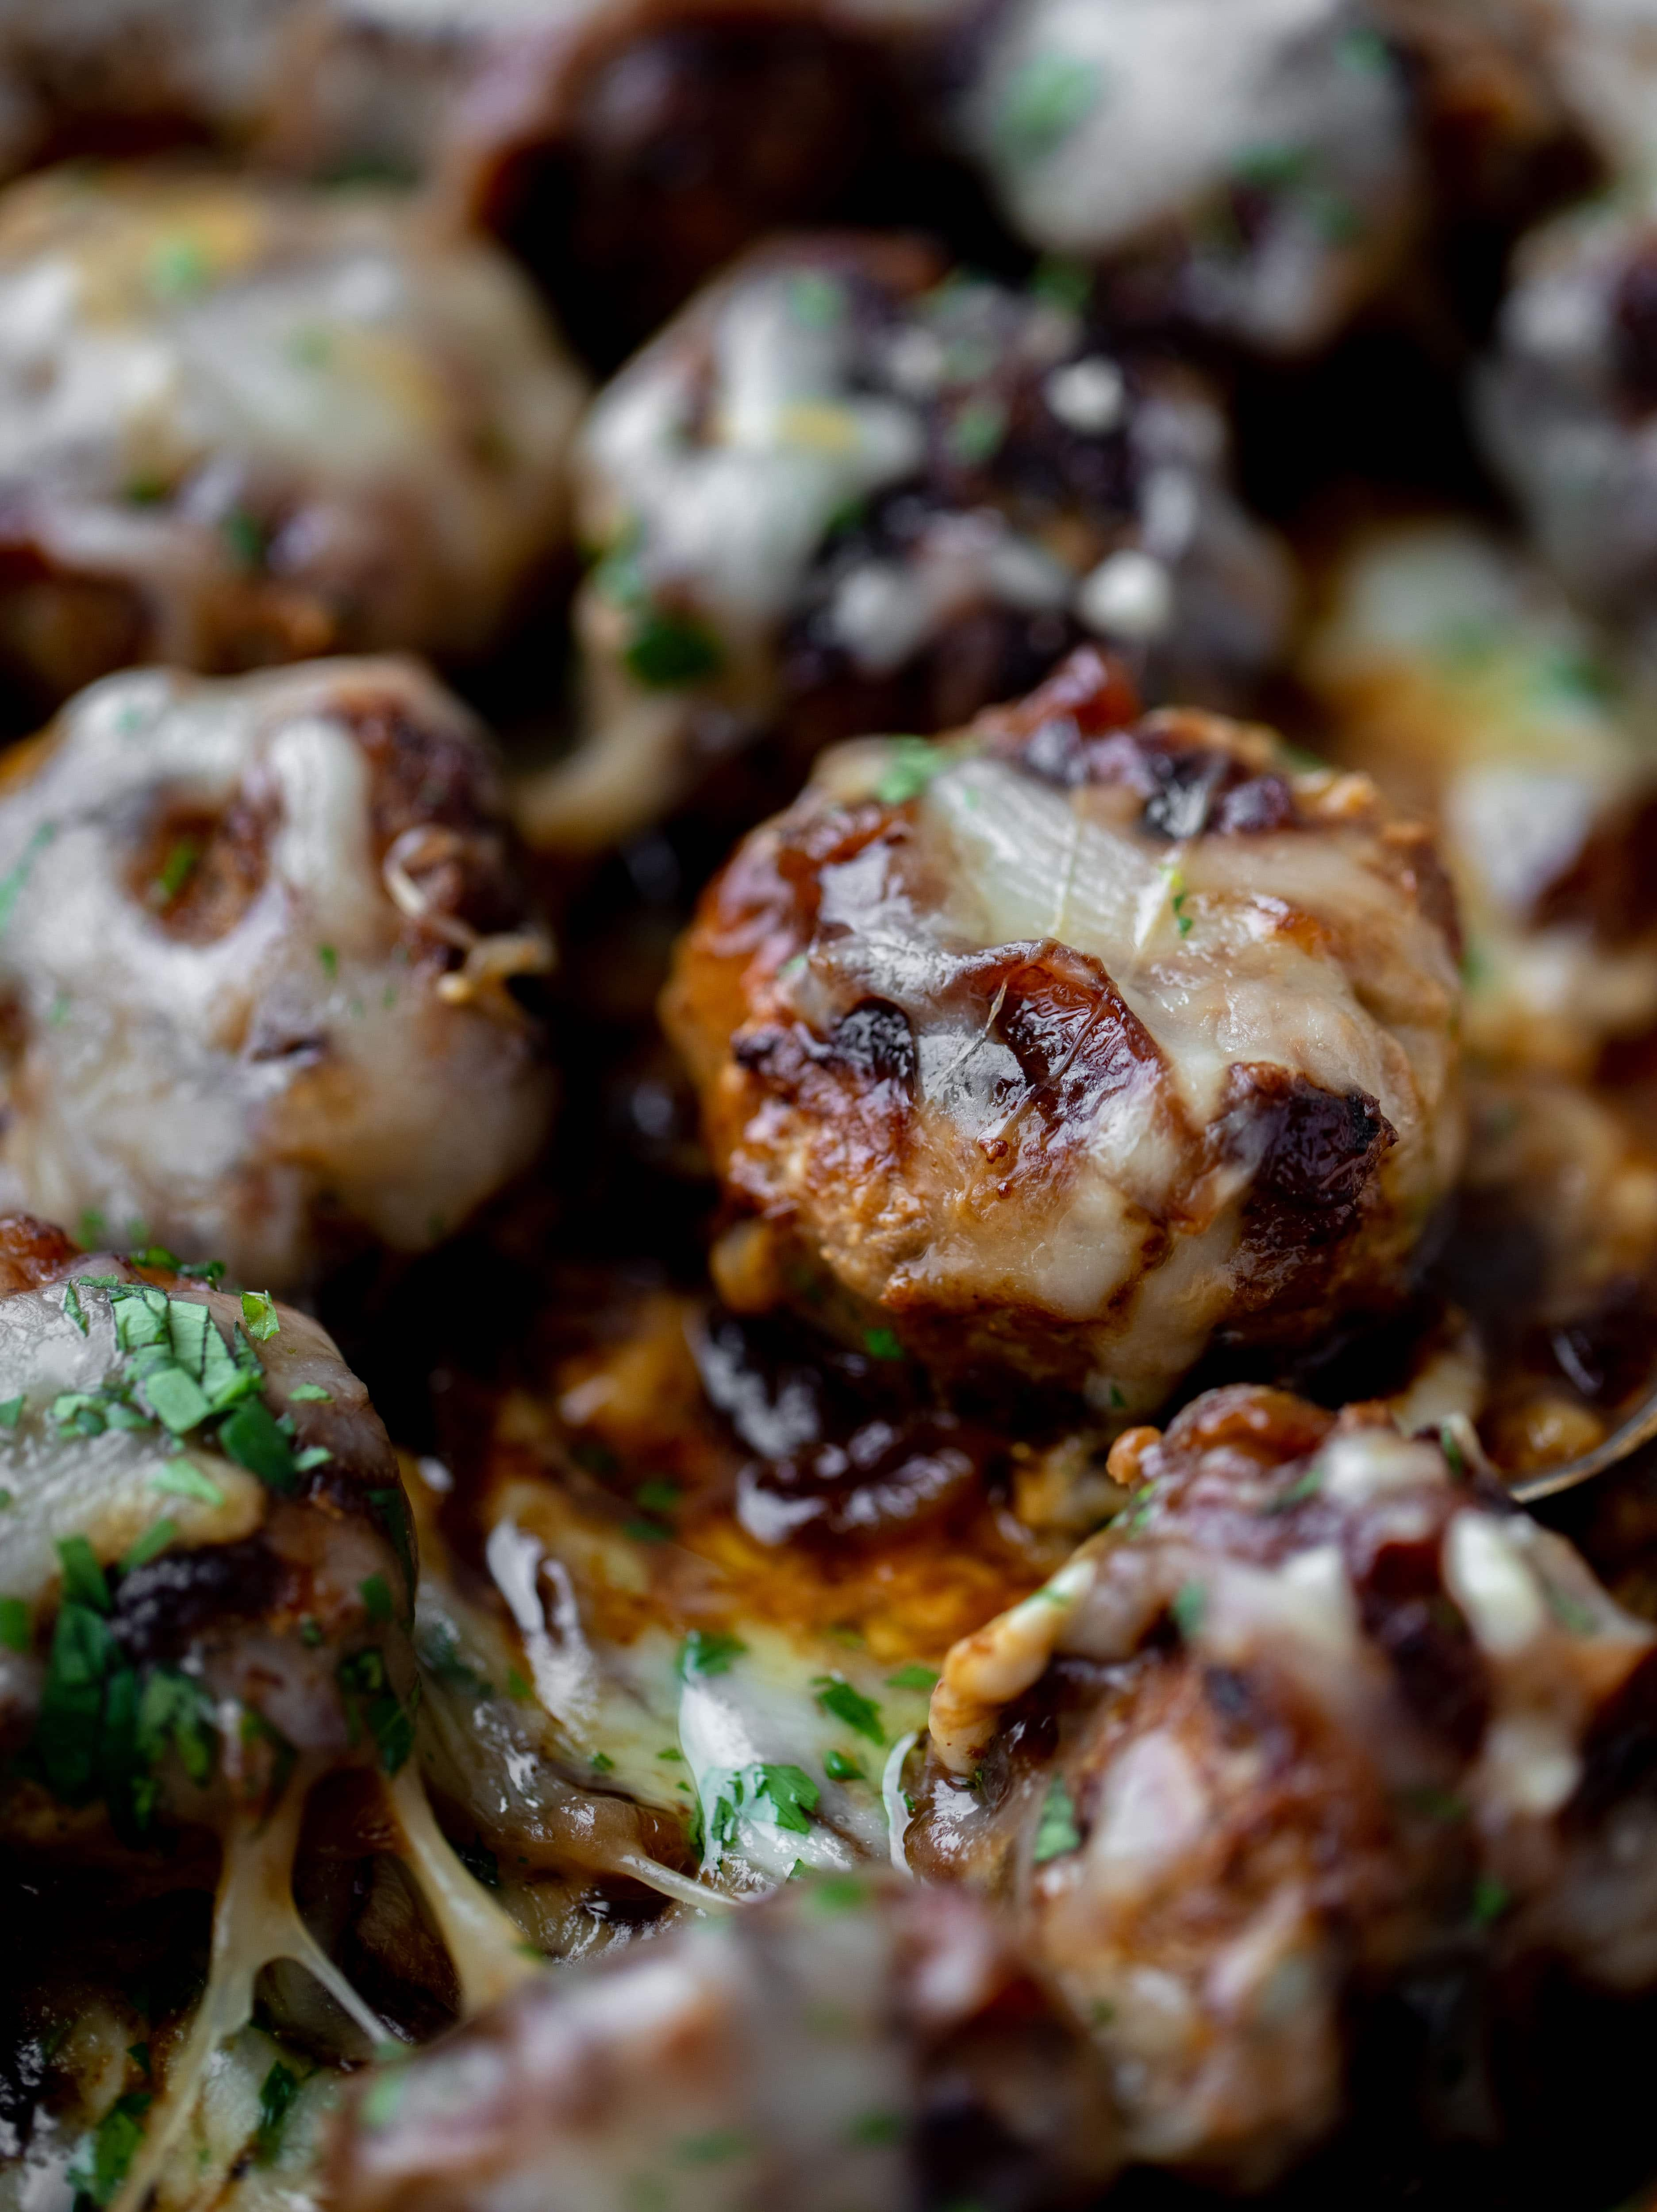 These french onion meatballs are super delicious! All the flavors of french onion soup made into juicy meatballs. Cheesy, saucy goodness!